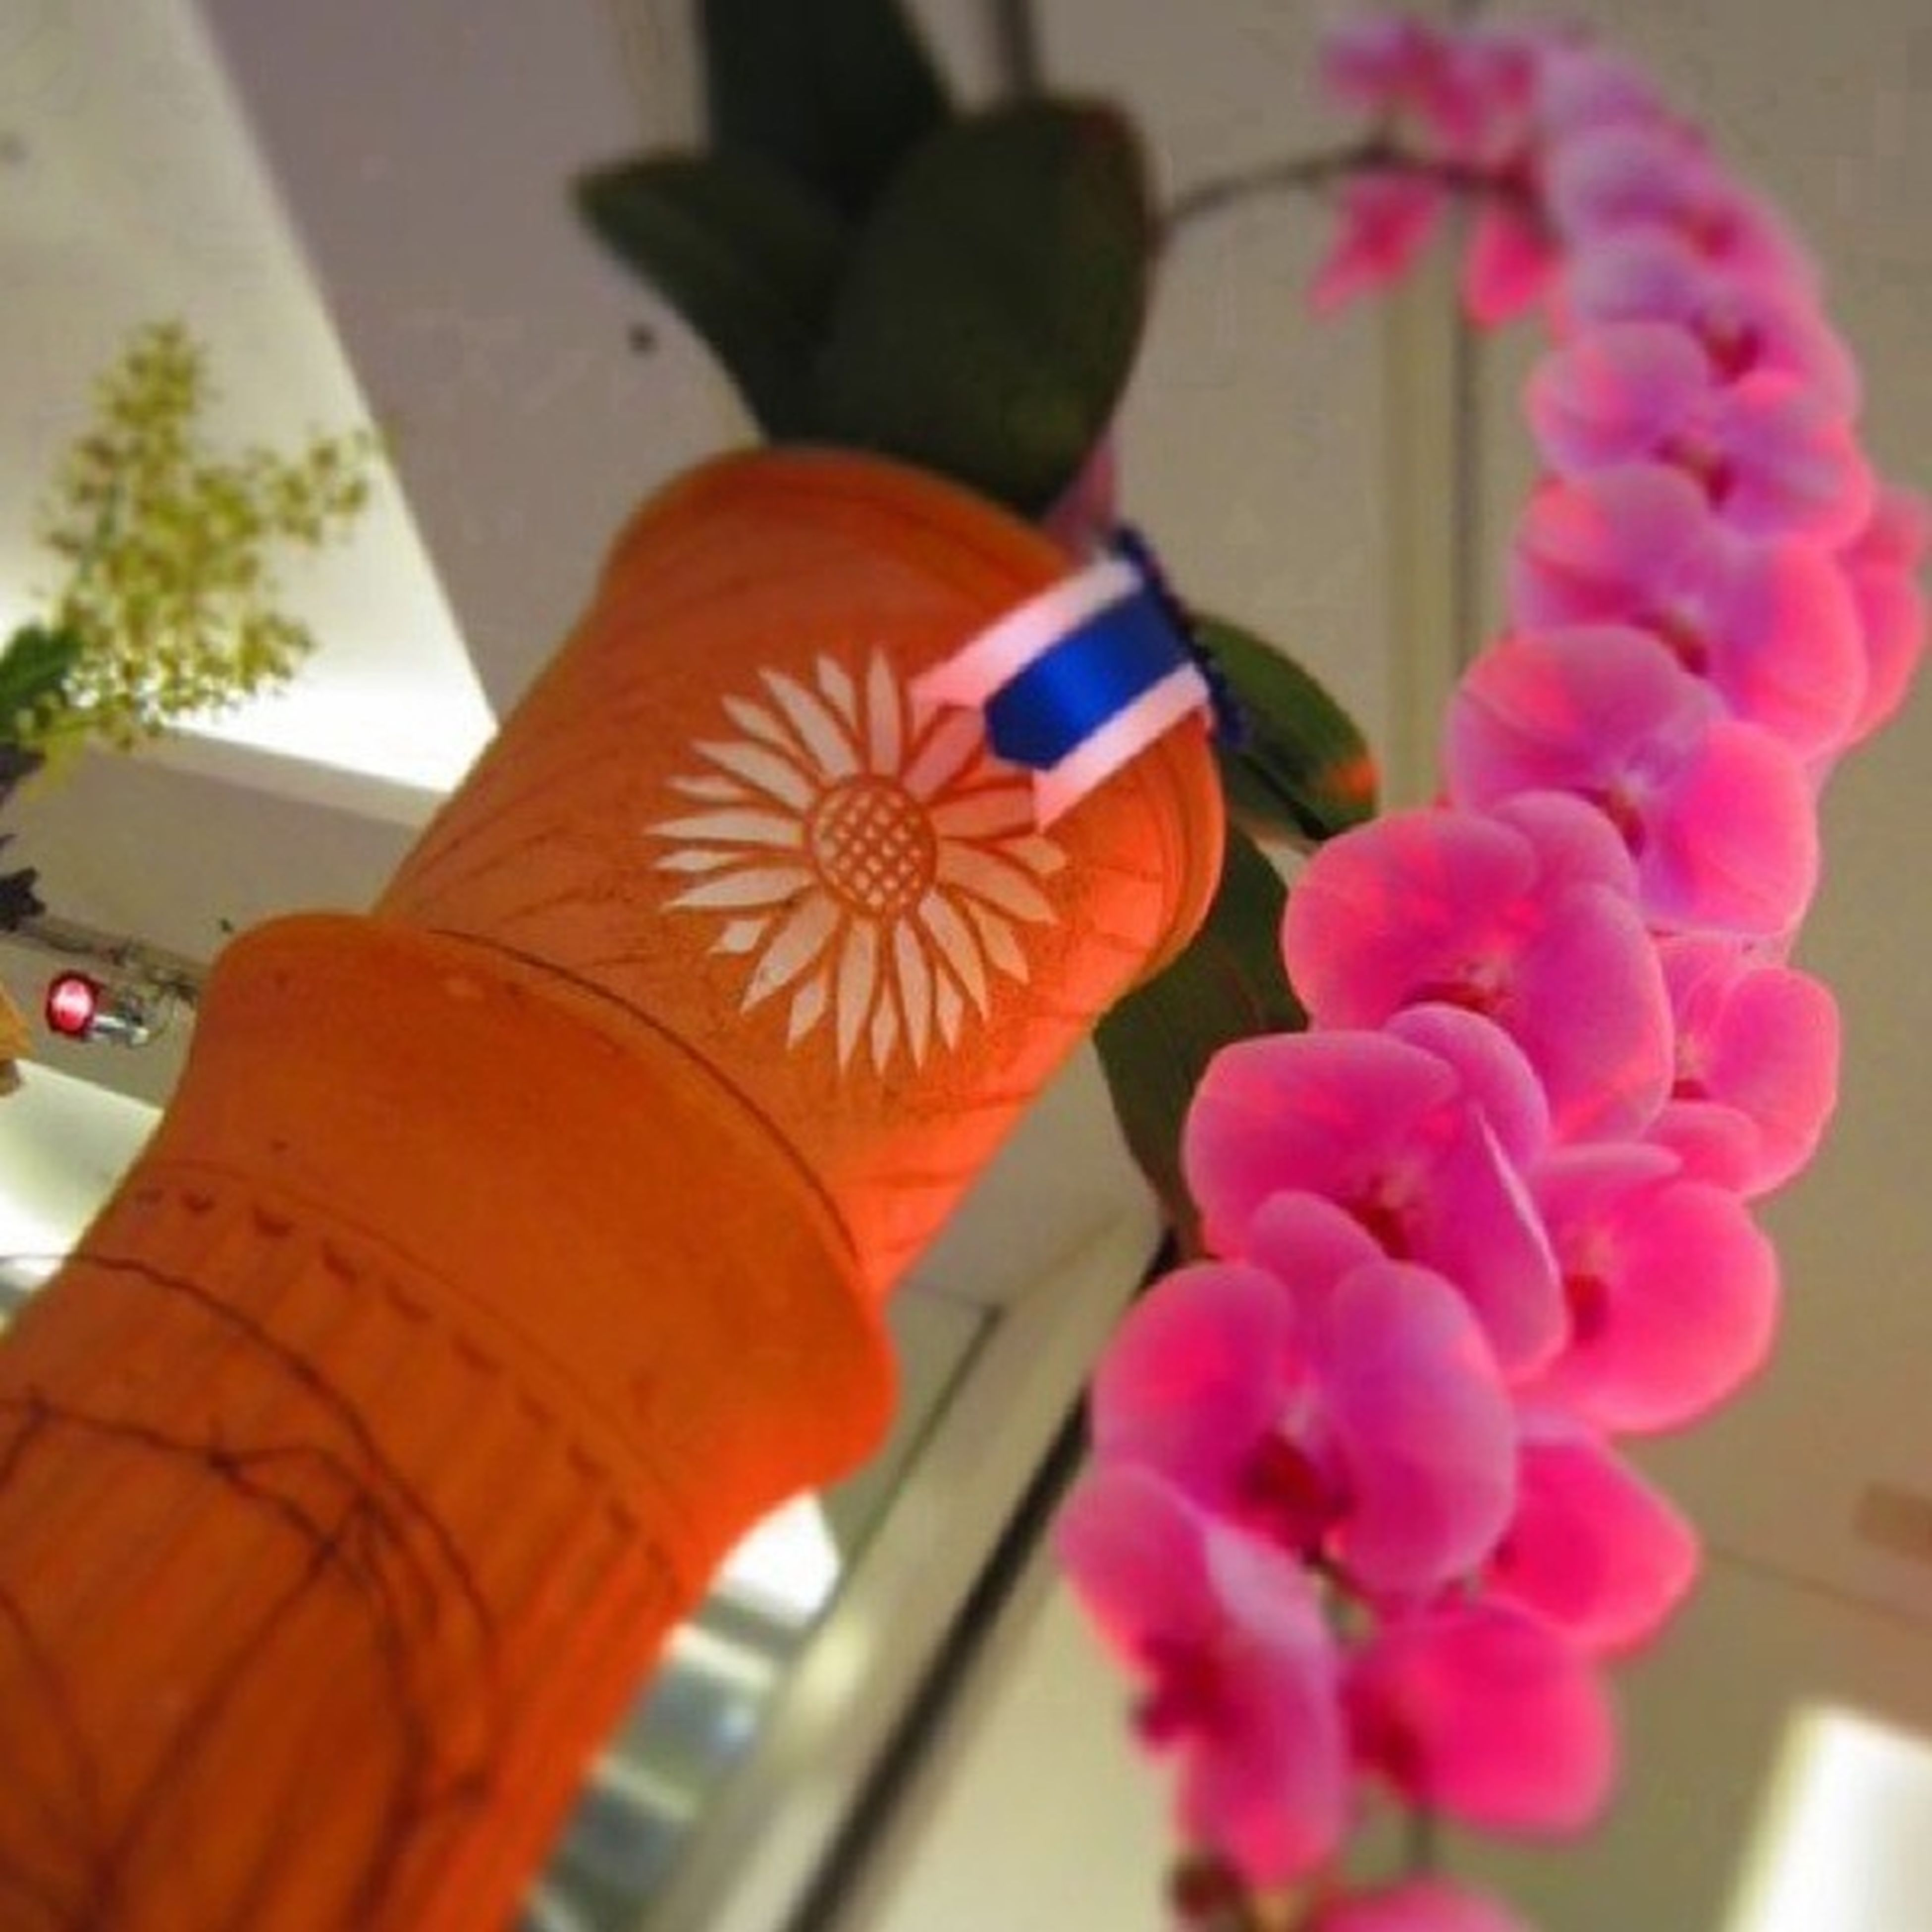 flower, focus on foreground, close-up, multi colored, pink color, indoors, decoration, part of, day, no people, cropped, fragility, selective focus, animal representation, toy, low angle view, art and craft, hanging, nature